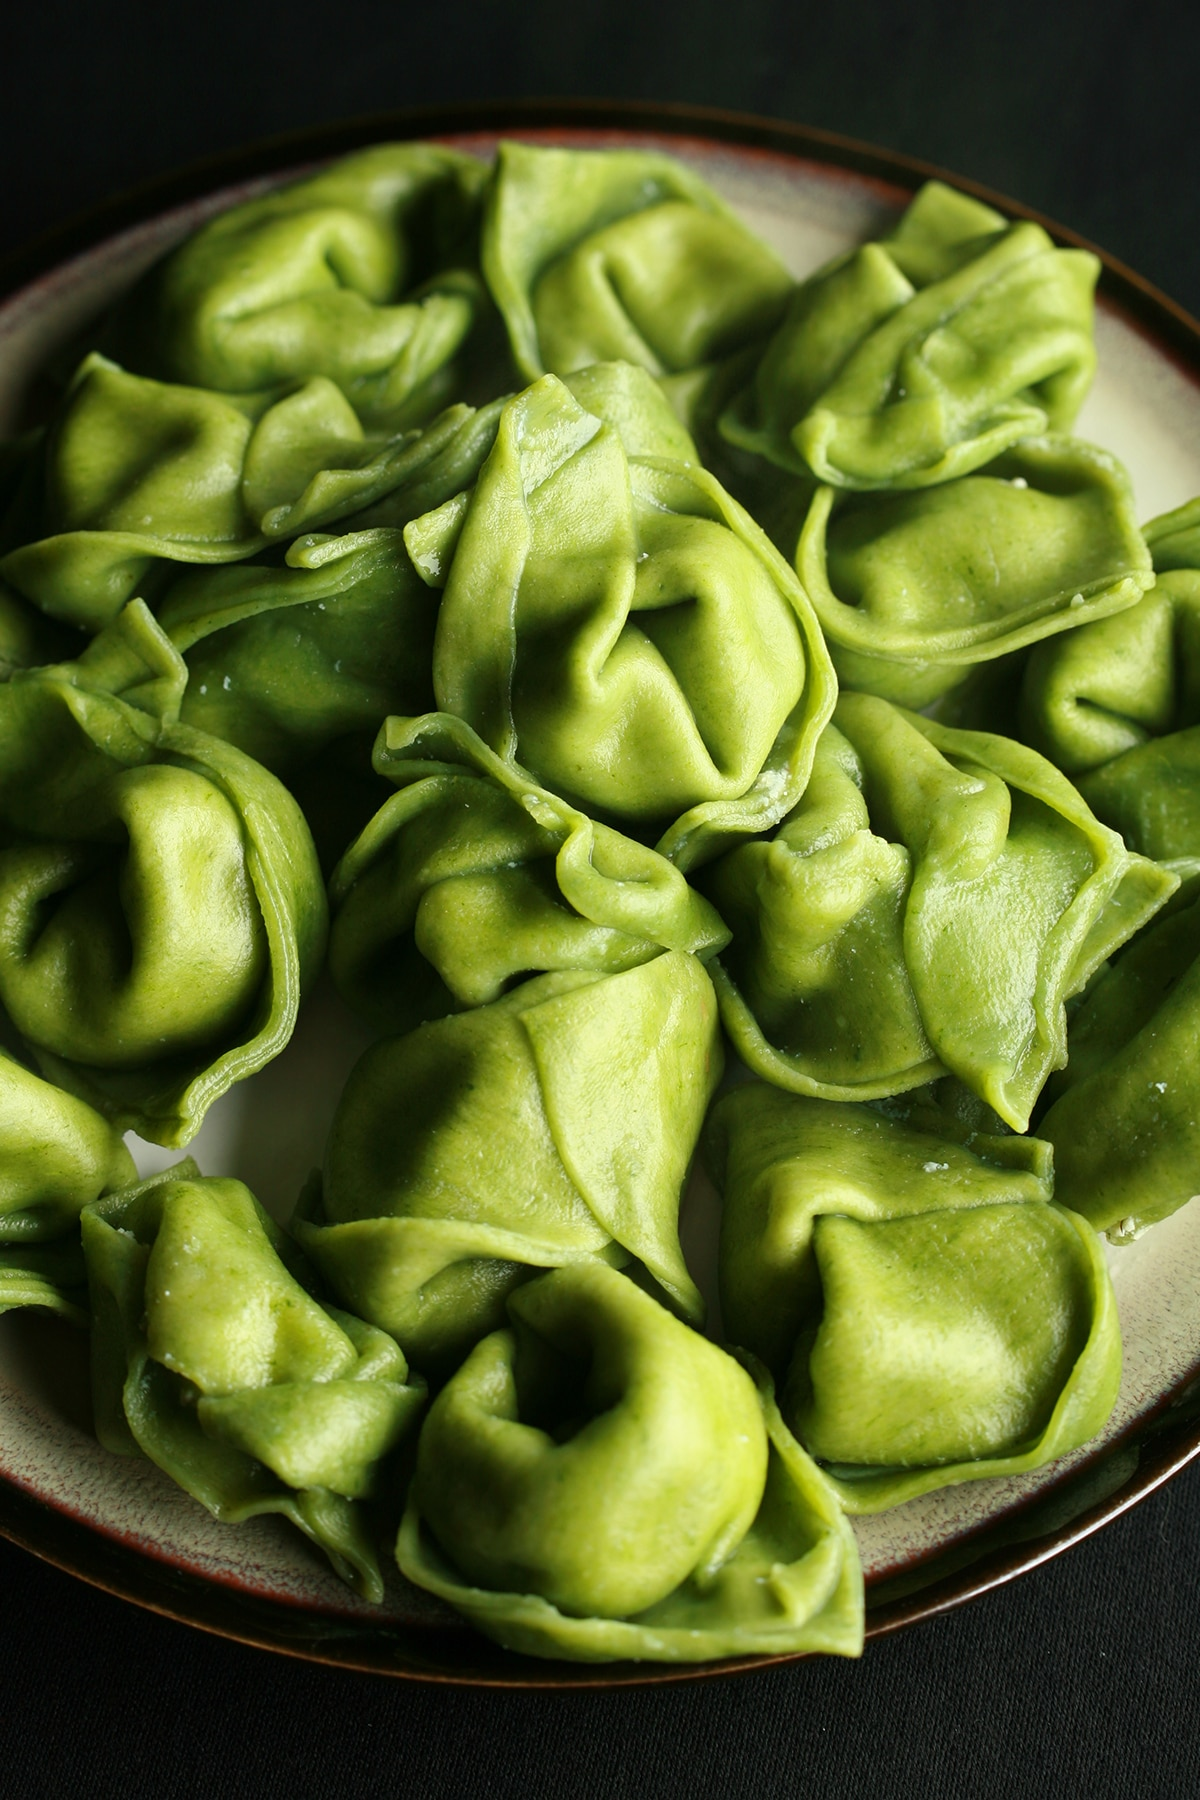 A plate of bright green spinach tortellini.